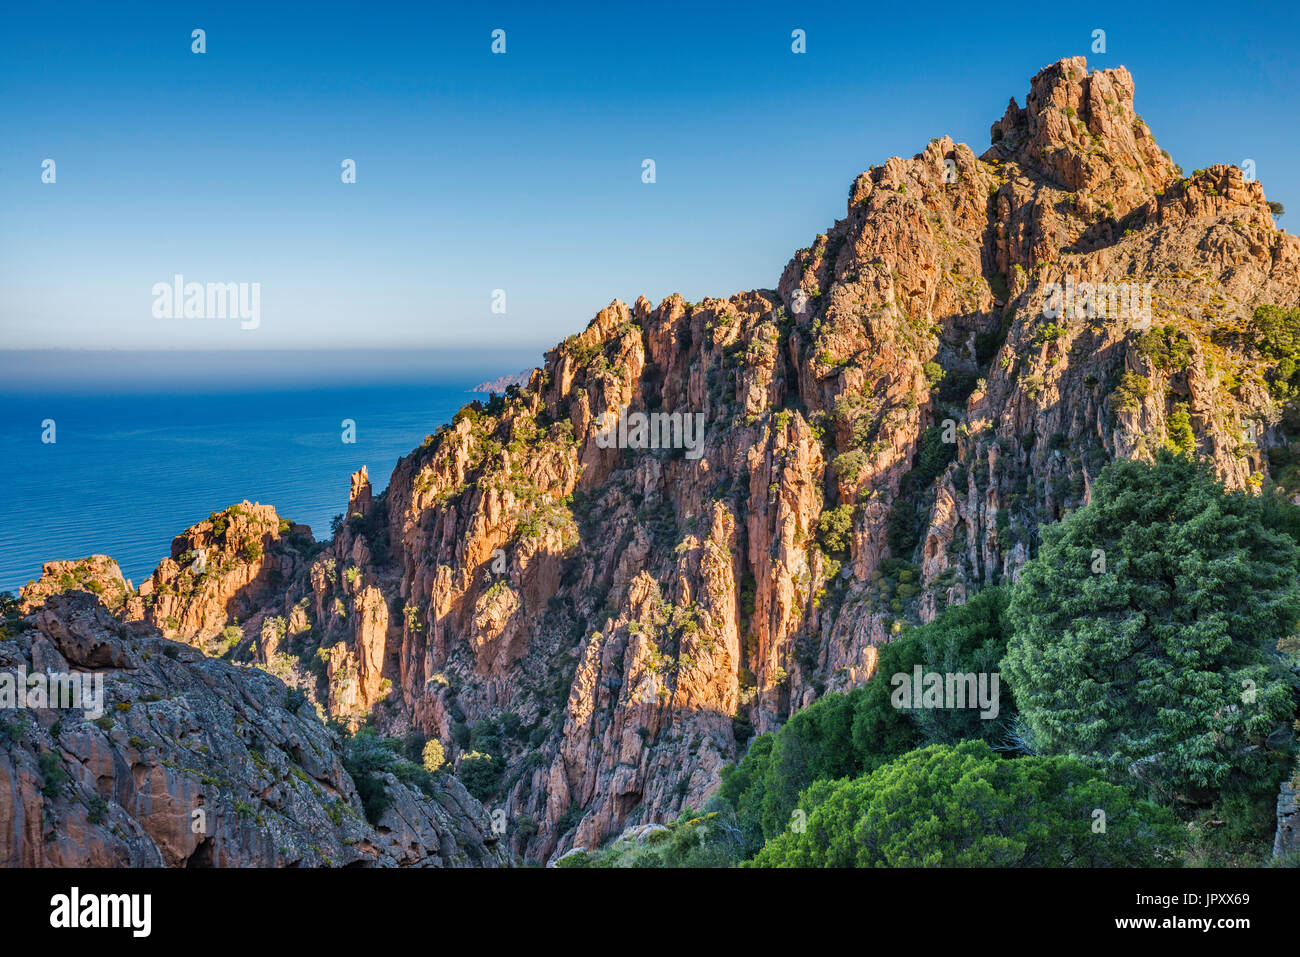 Les roches de granite porphyrique Orange, à les Calanche de Piana, Site du patrimoine mondial de l'UNESCO, Corse-du-Sud, Corse, France Photo Stock